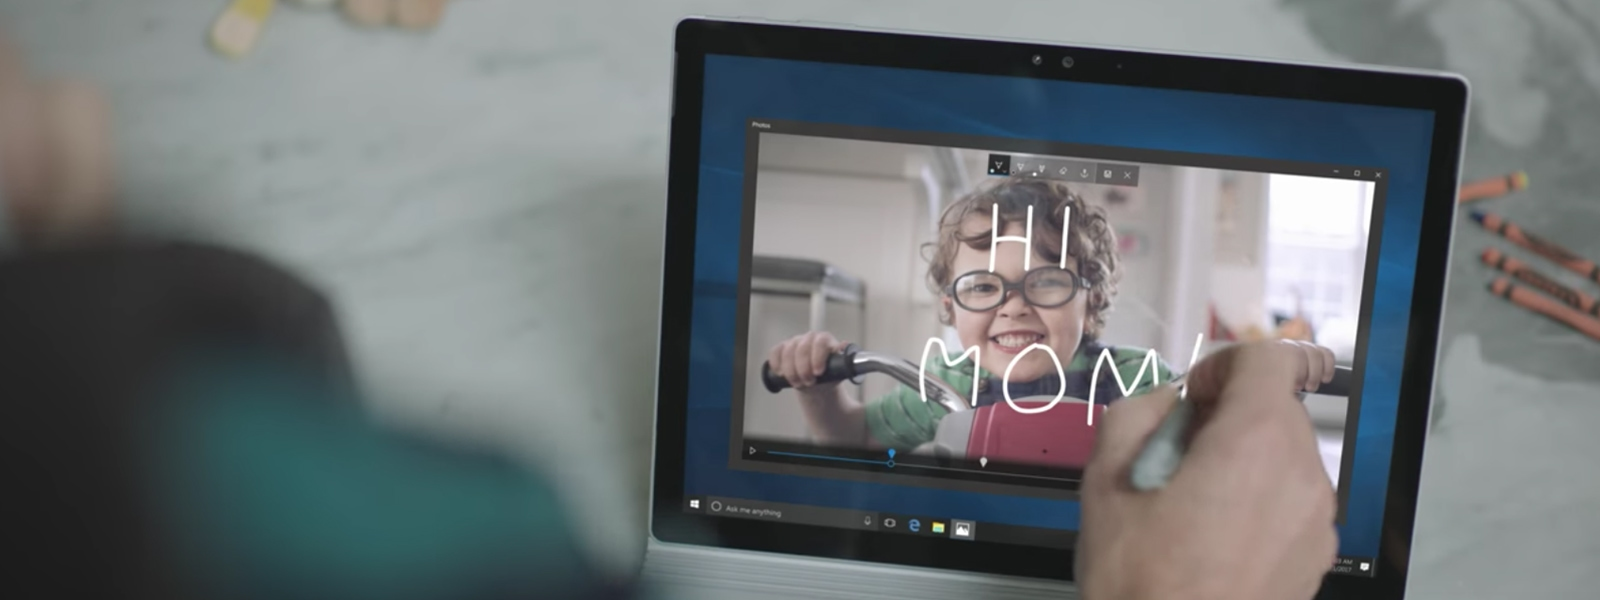 Woman on laptop, writing text over a movie of her young child. The words 'Hi Mom' appear over a speckled young boy on a tricycle